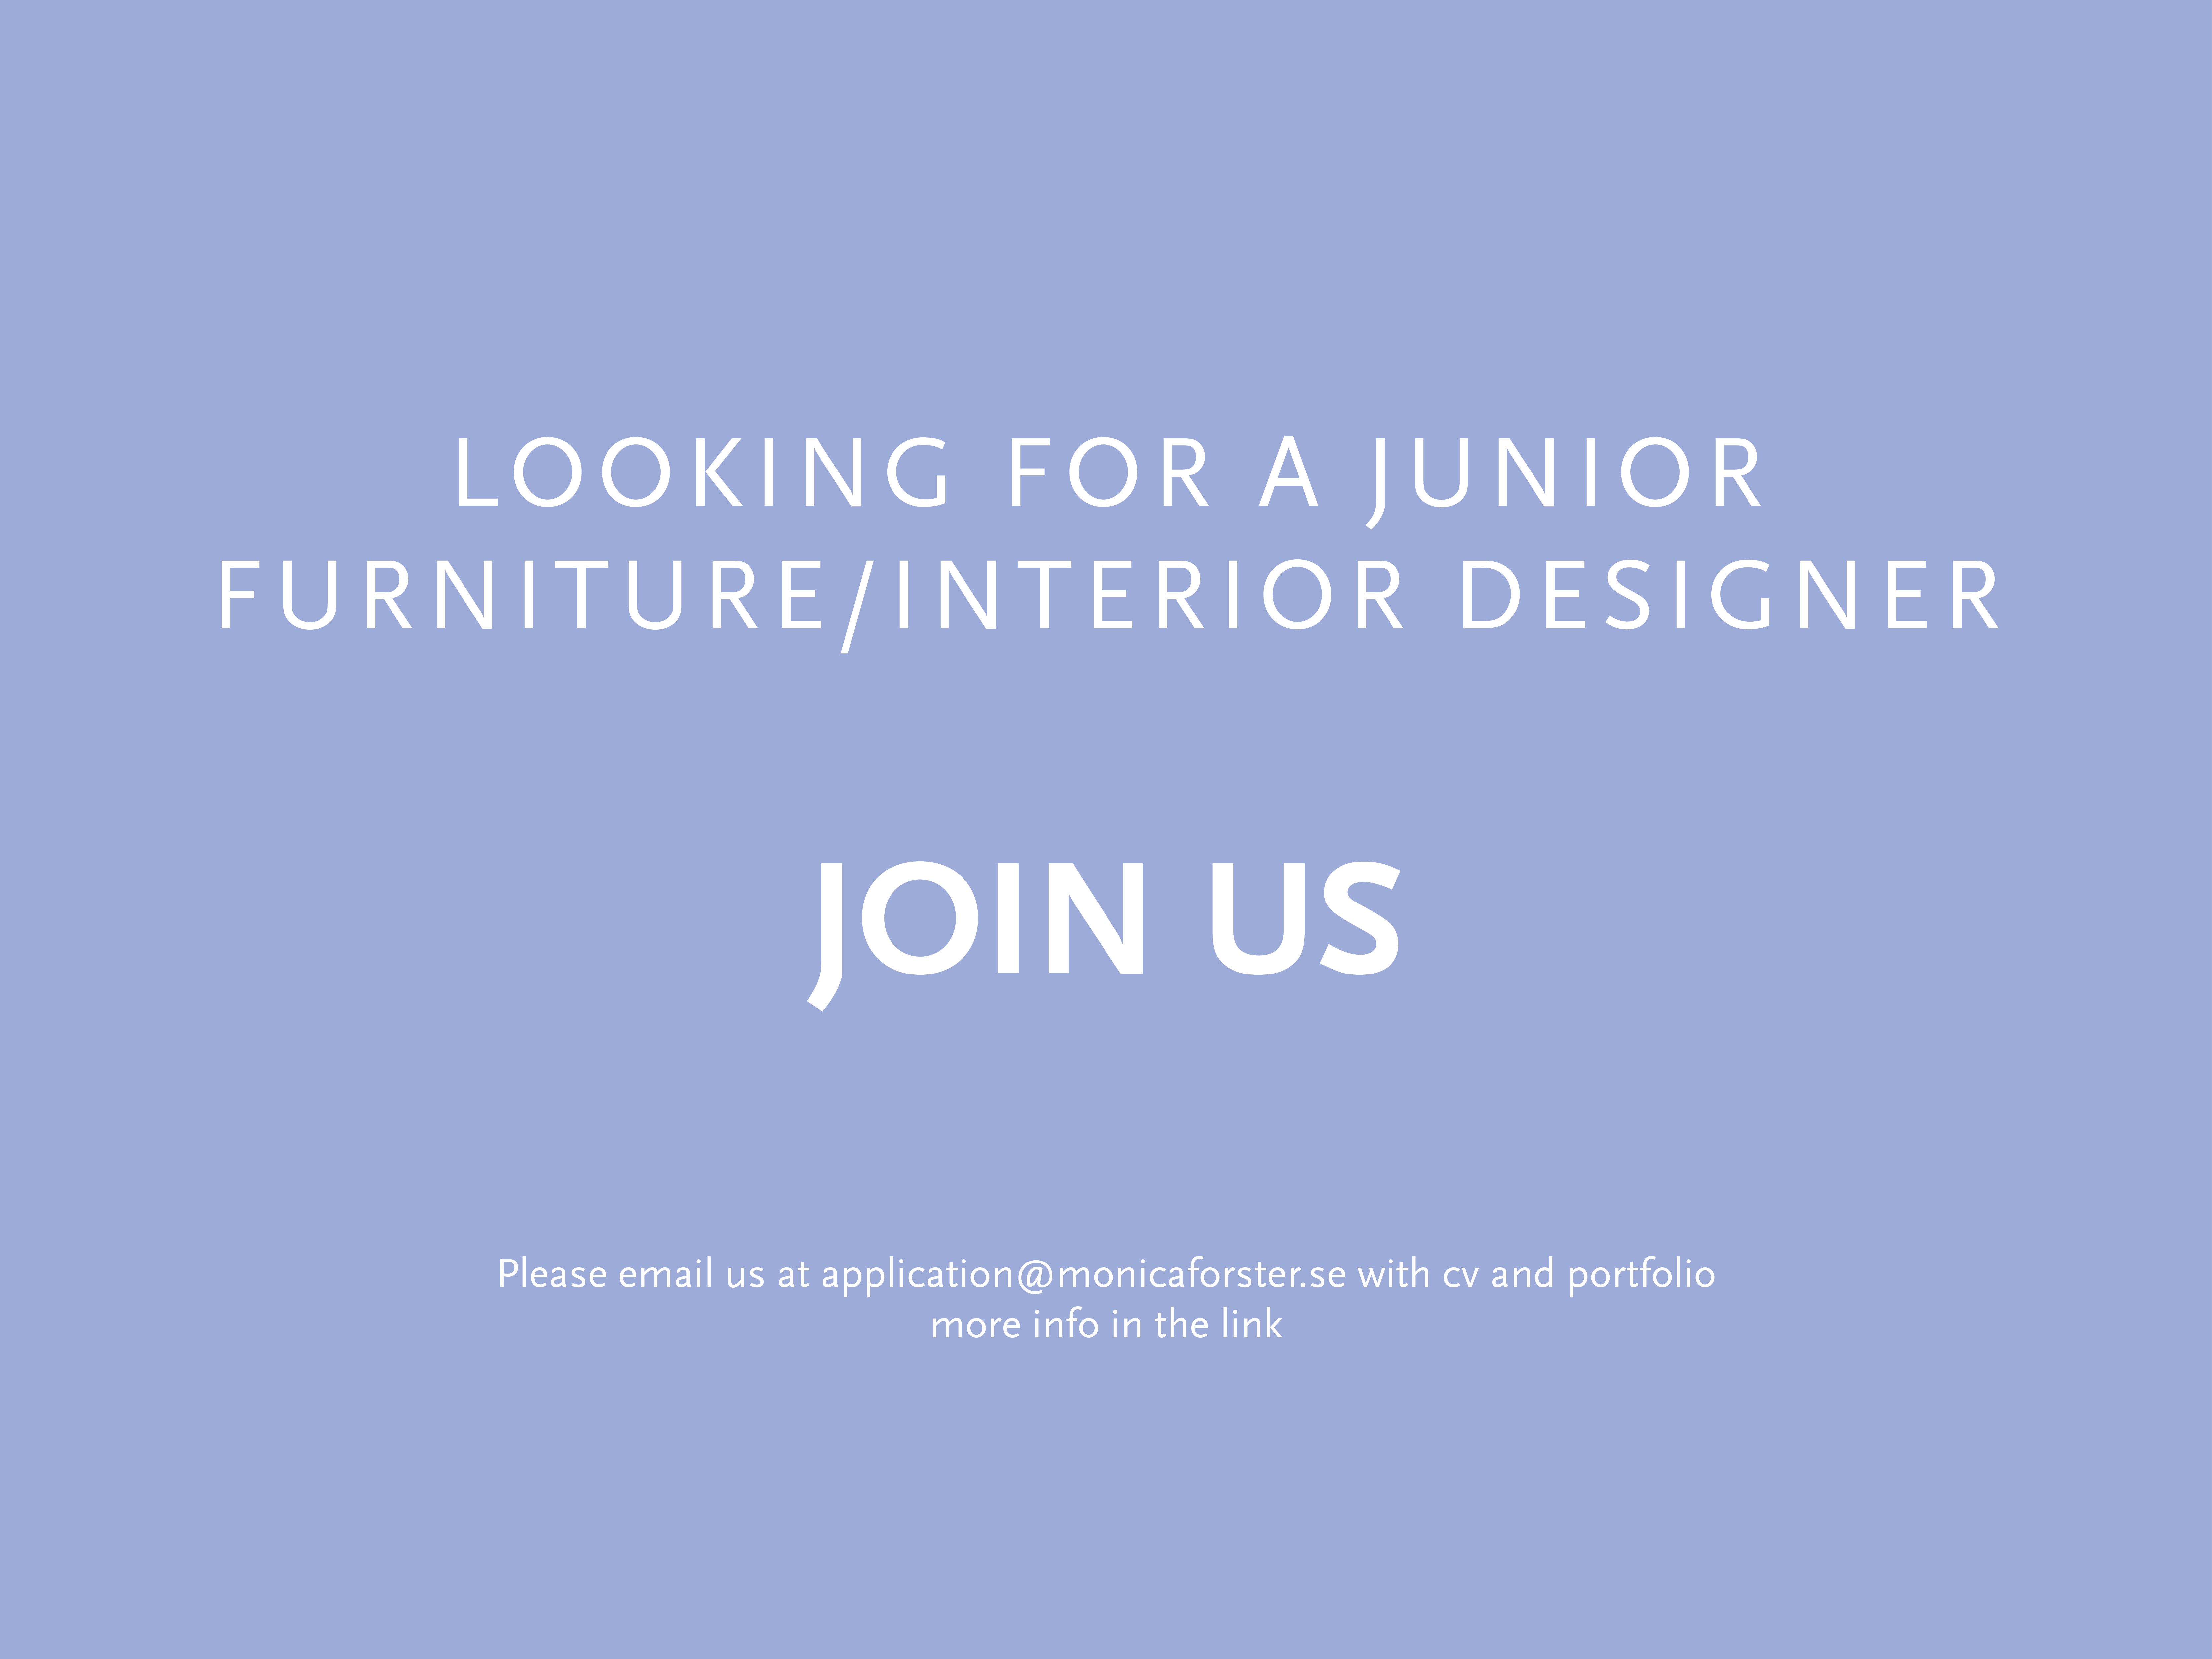 JOIN US! - Looking for a Junior Furniture/Interior Designer